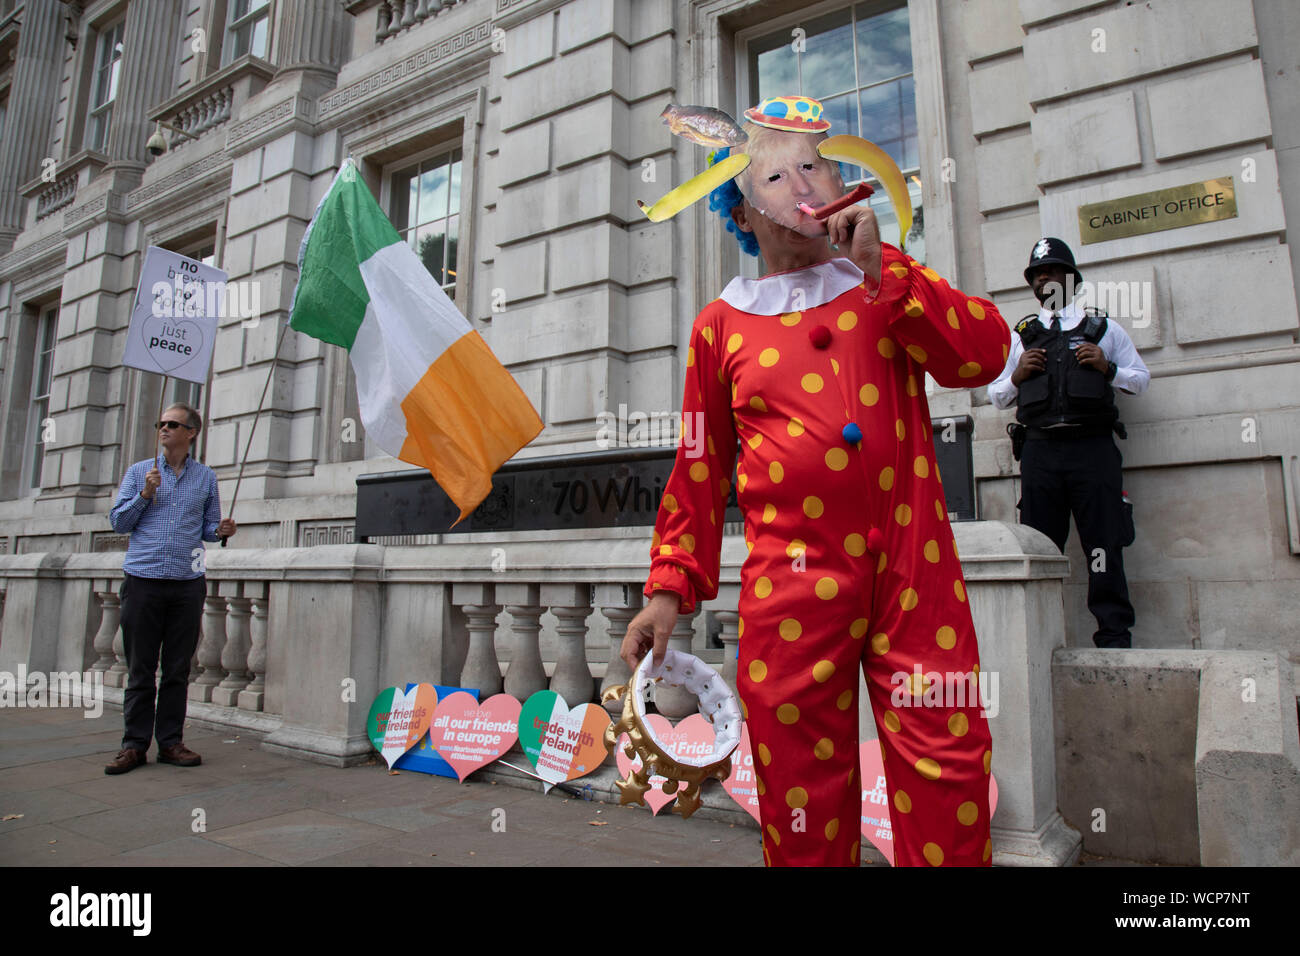 Office Clown Stock Photos & Office Clown Stock Images - Alamy